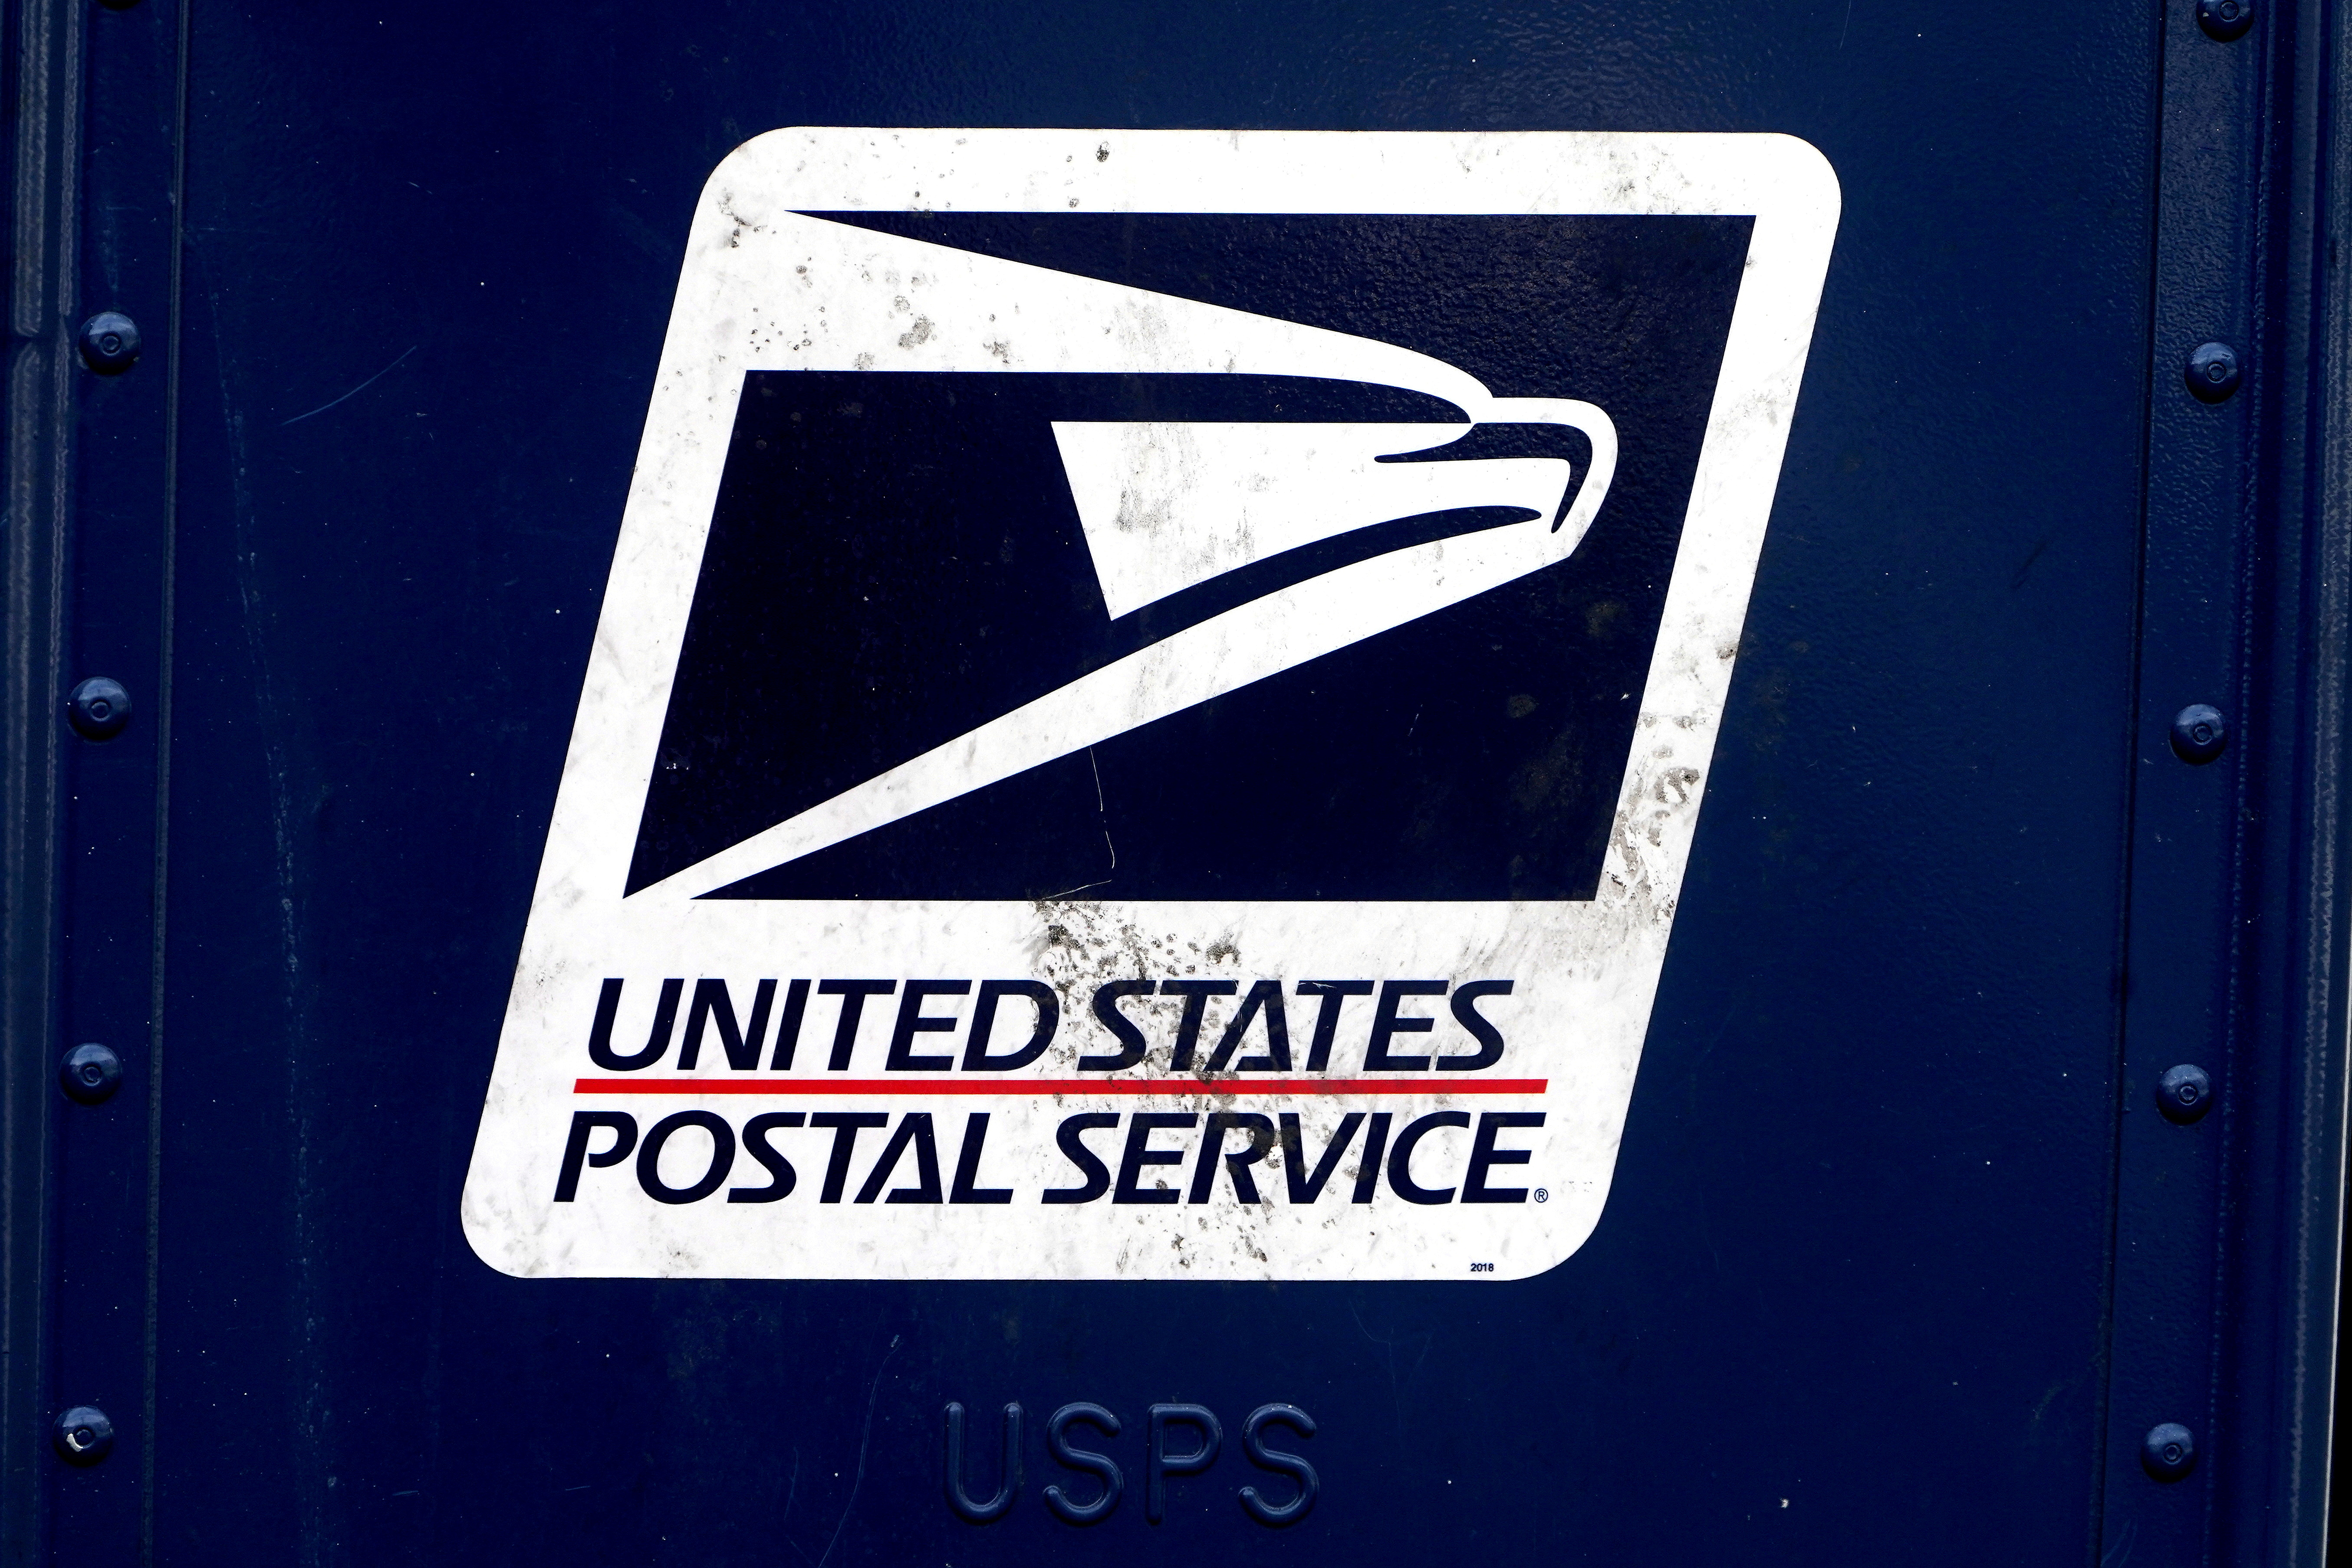 A U.S. Postal Service (USPS) logo is pictured on a mail box in the Manhattan borough of New York City, New York, U.S., August 21, 2020. REUTERS/Carlo Allegri